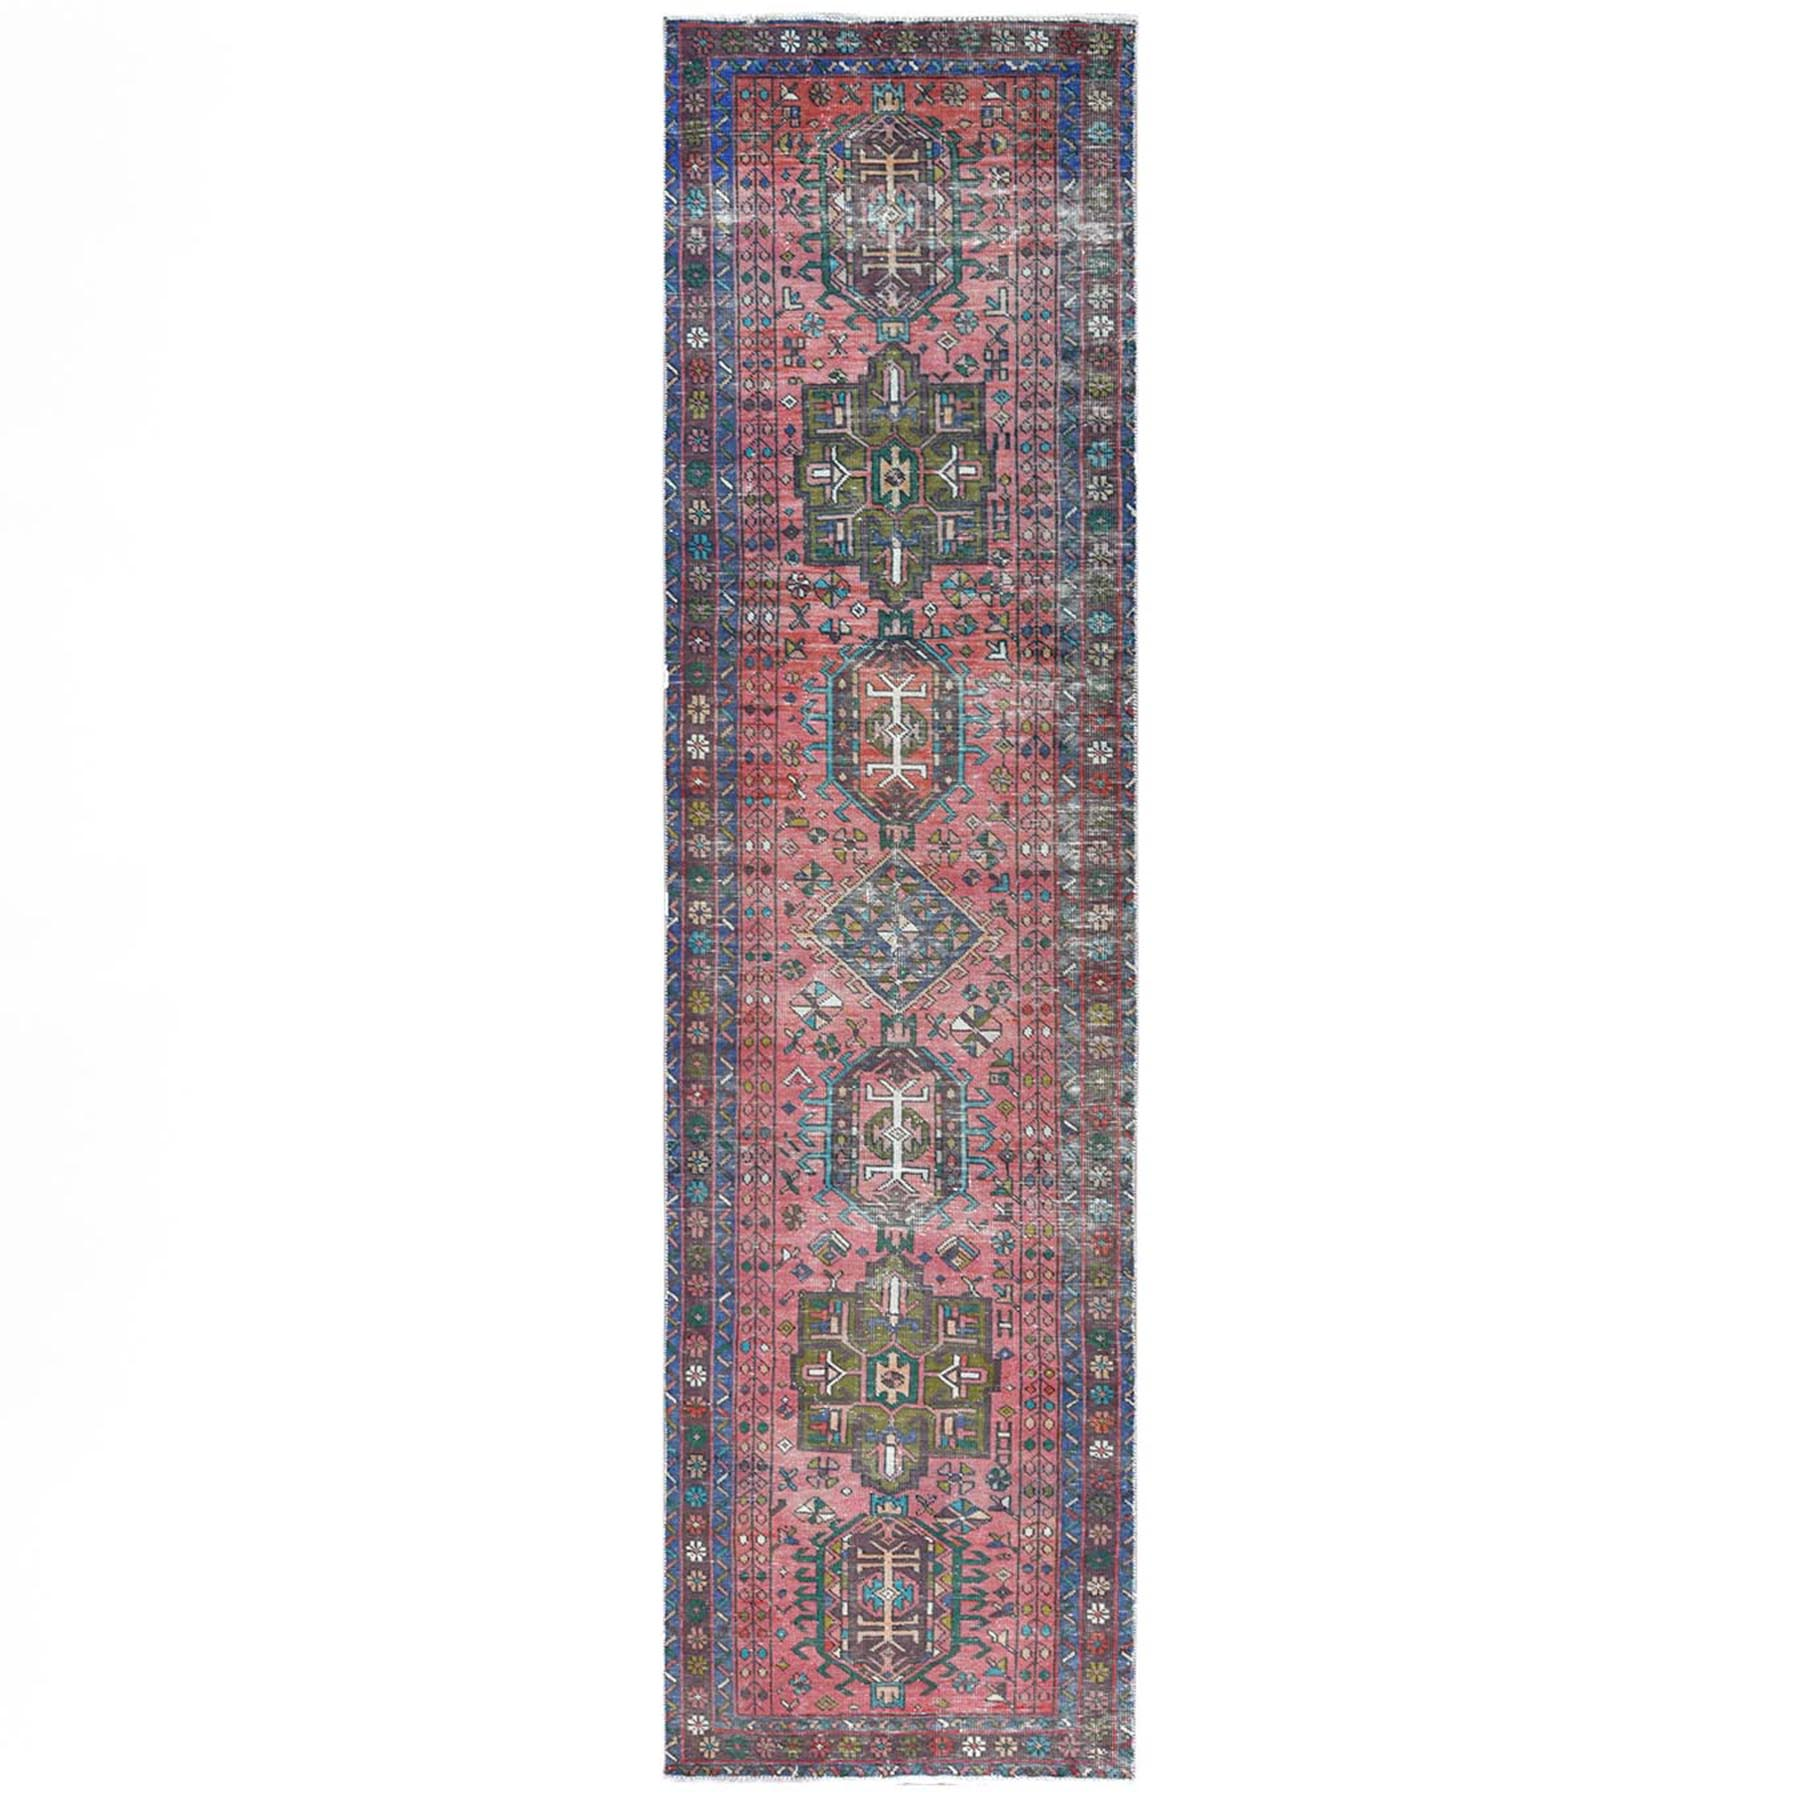 Fetneh Collection And Vintage Overdyed Collection Hand Knotted Red Rug No: 1121864